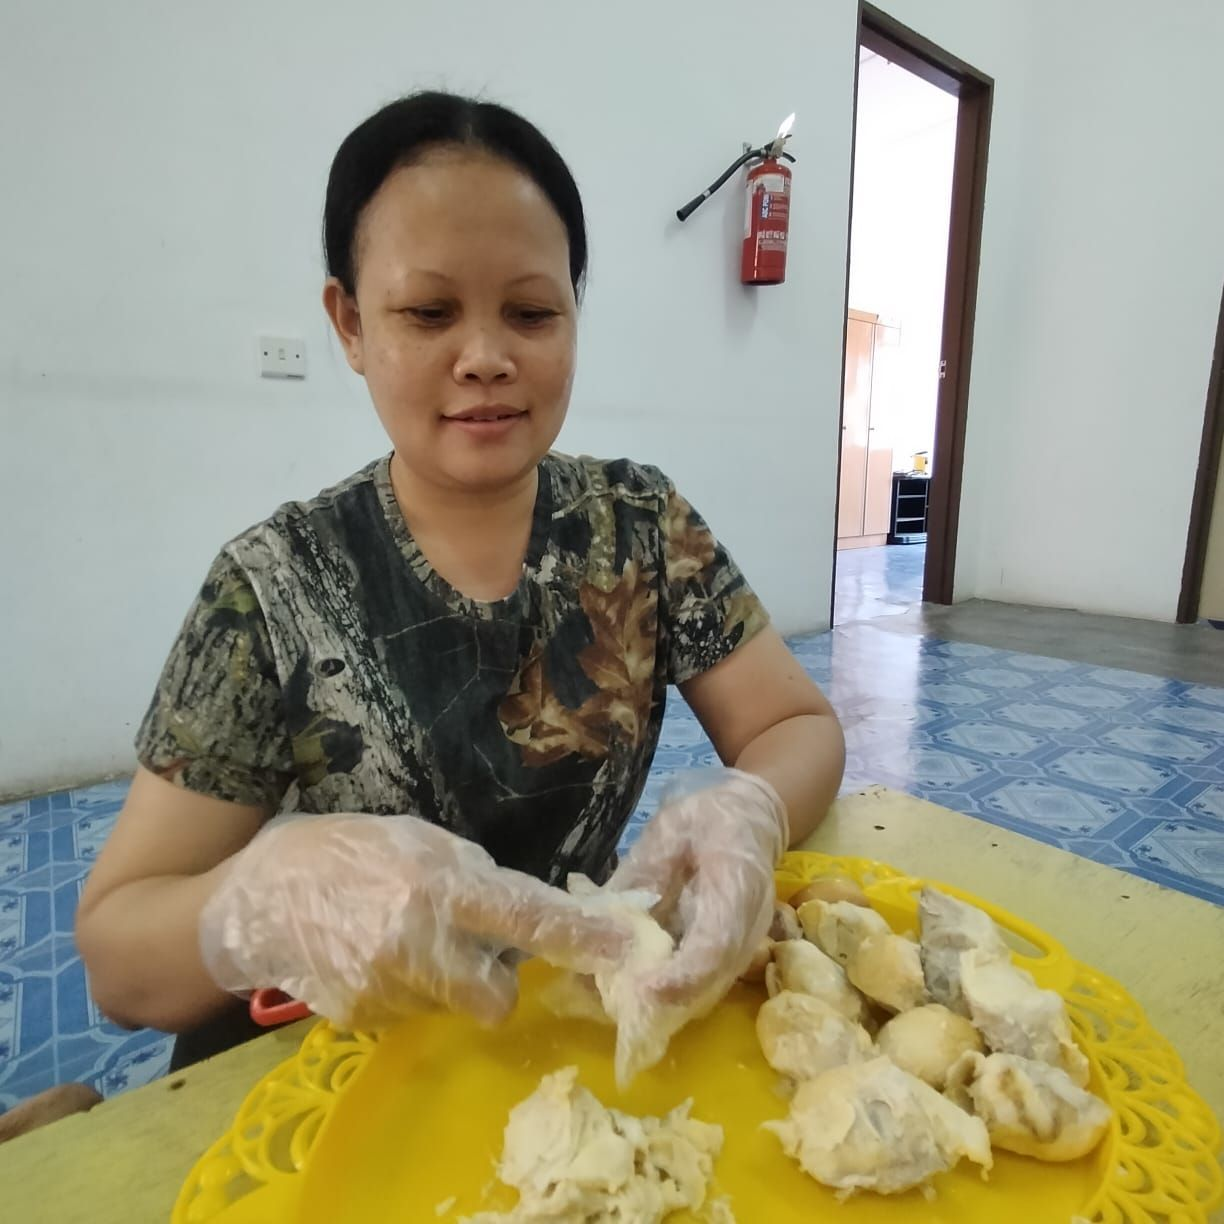 Alang Shana, from Chenderiang, removing durian flesh from the seeds to make tempoyak.